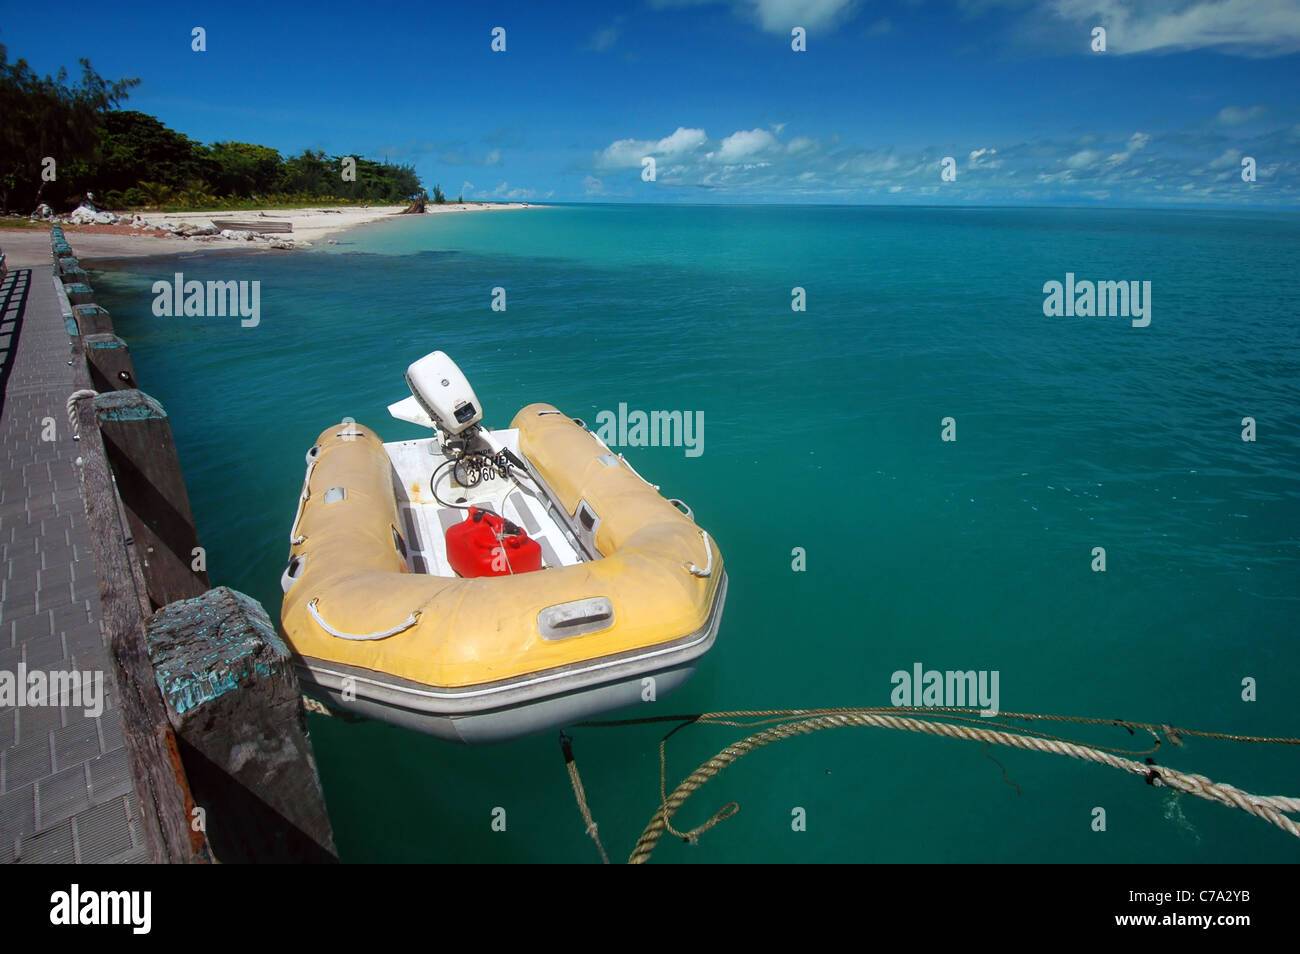 Coconut Island Queensland: Torres Straits Stock Photos & Torres Straits Stock Images